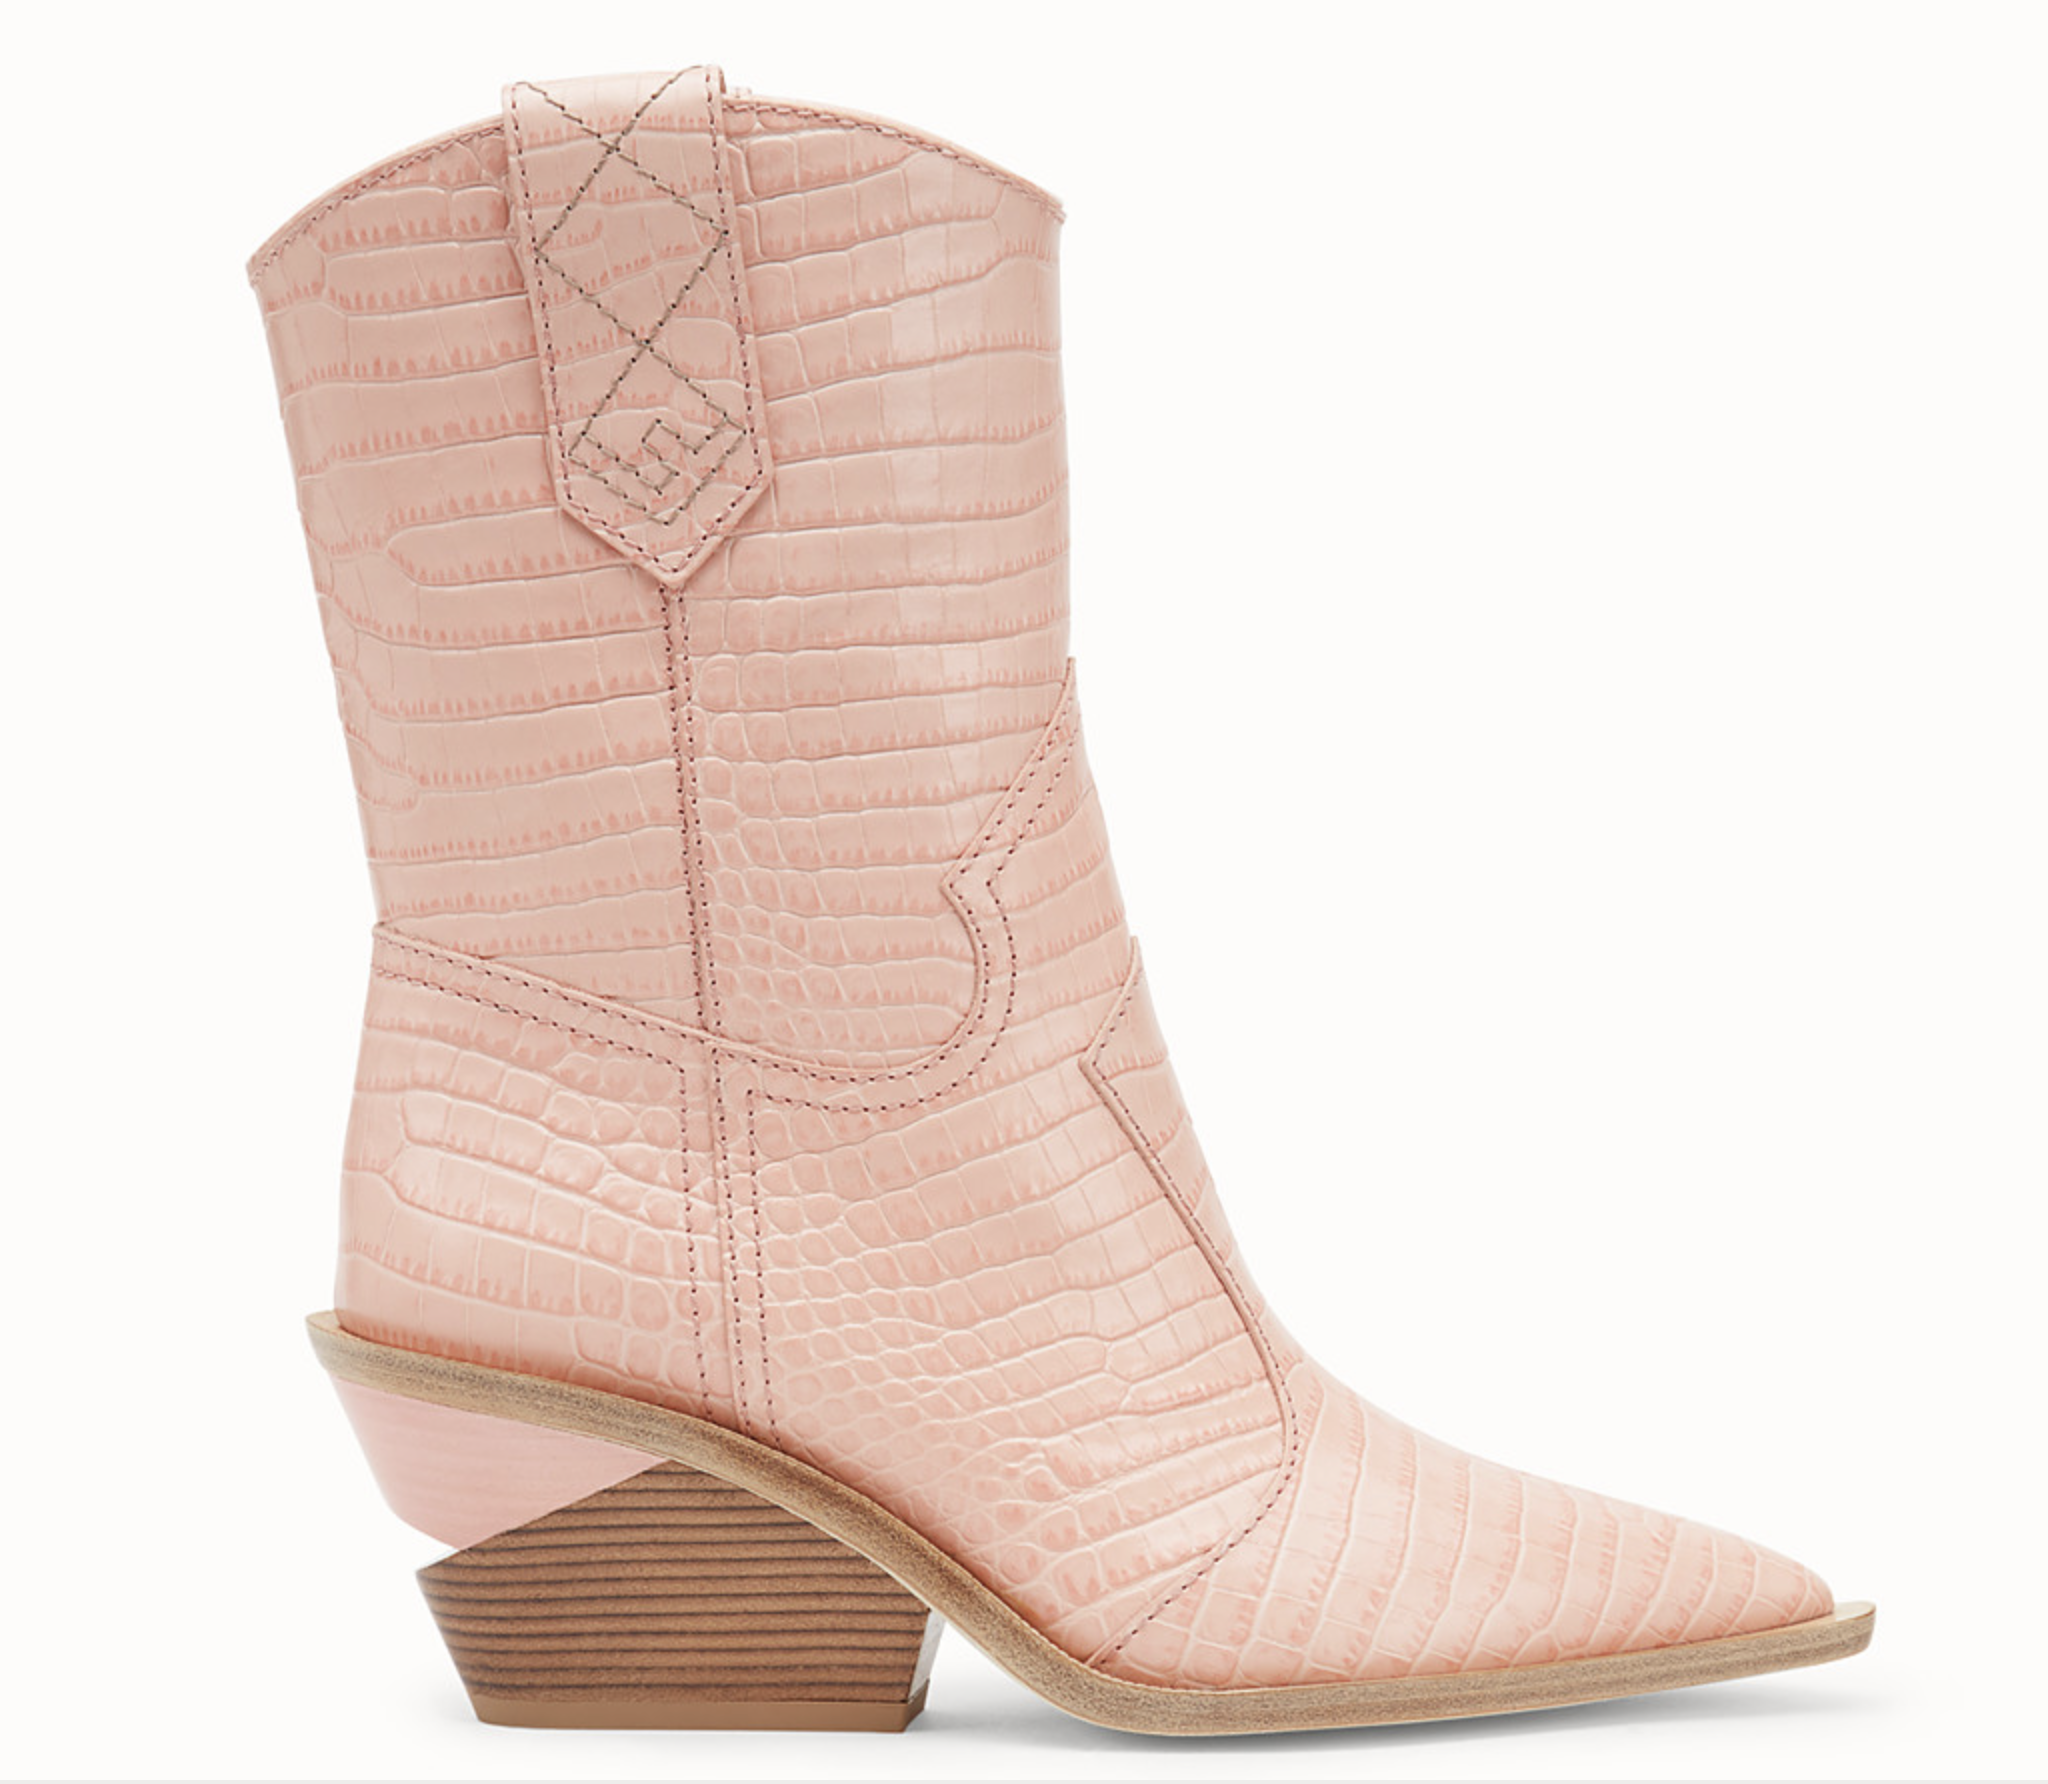 e973afd5289 Boots in 2019 | zapatos | Boots, Shoes, Boots code